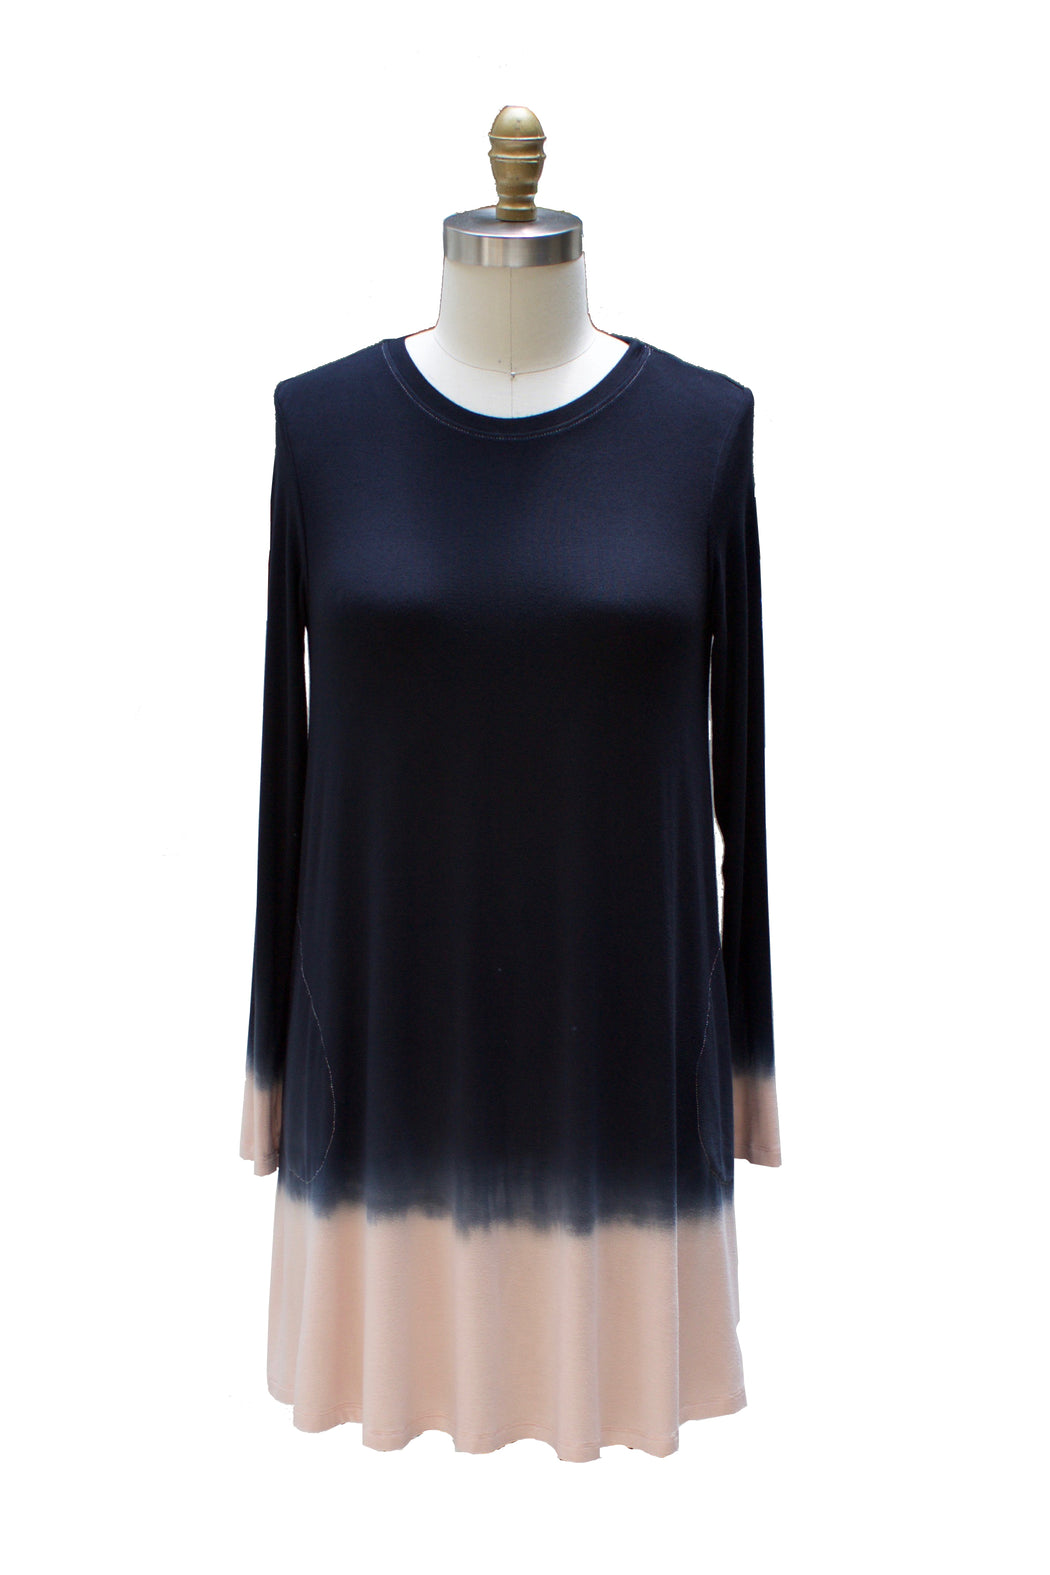 Dip Dye Capsule - A-Line Dress with Sleeves and Pockets